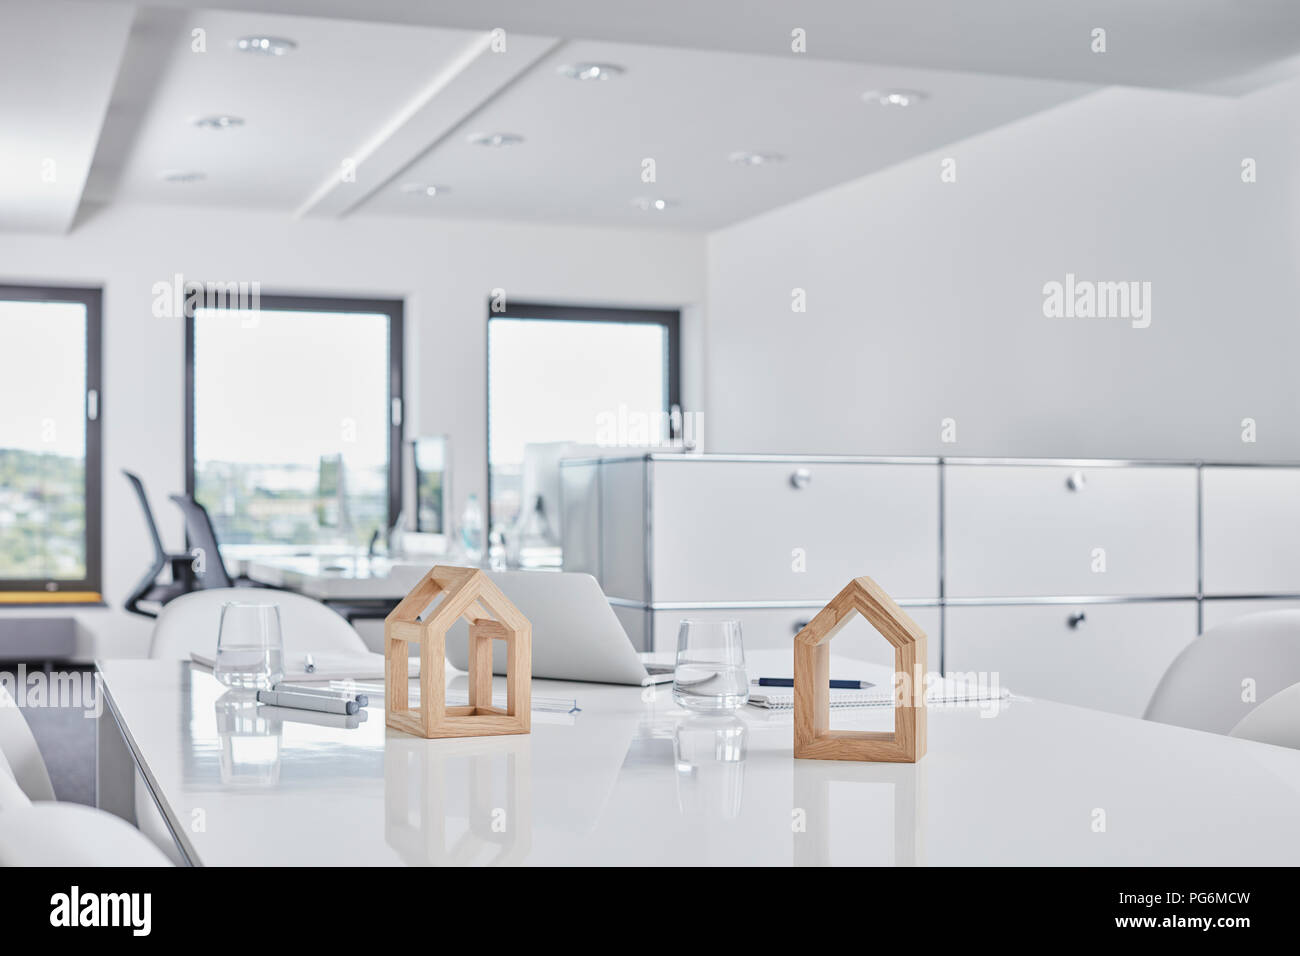 Architectural models on desk in office - Stock Image